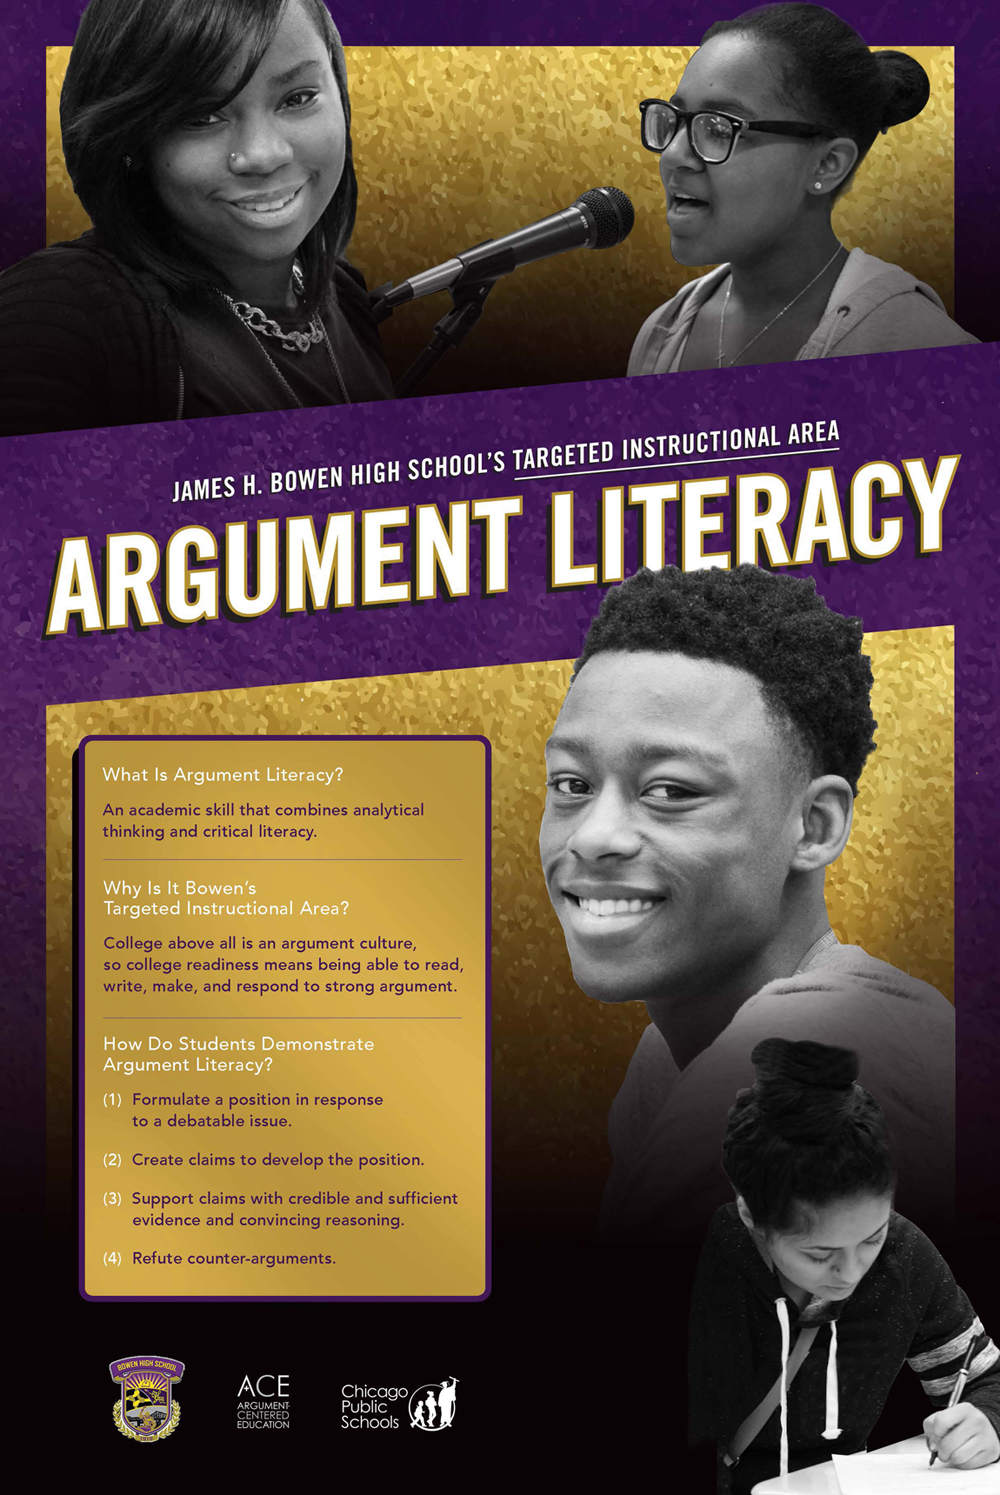 Argumentive Literacy Poster